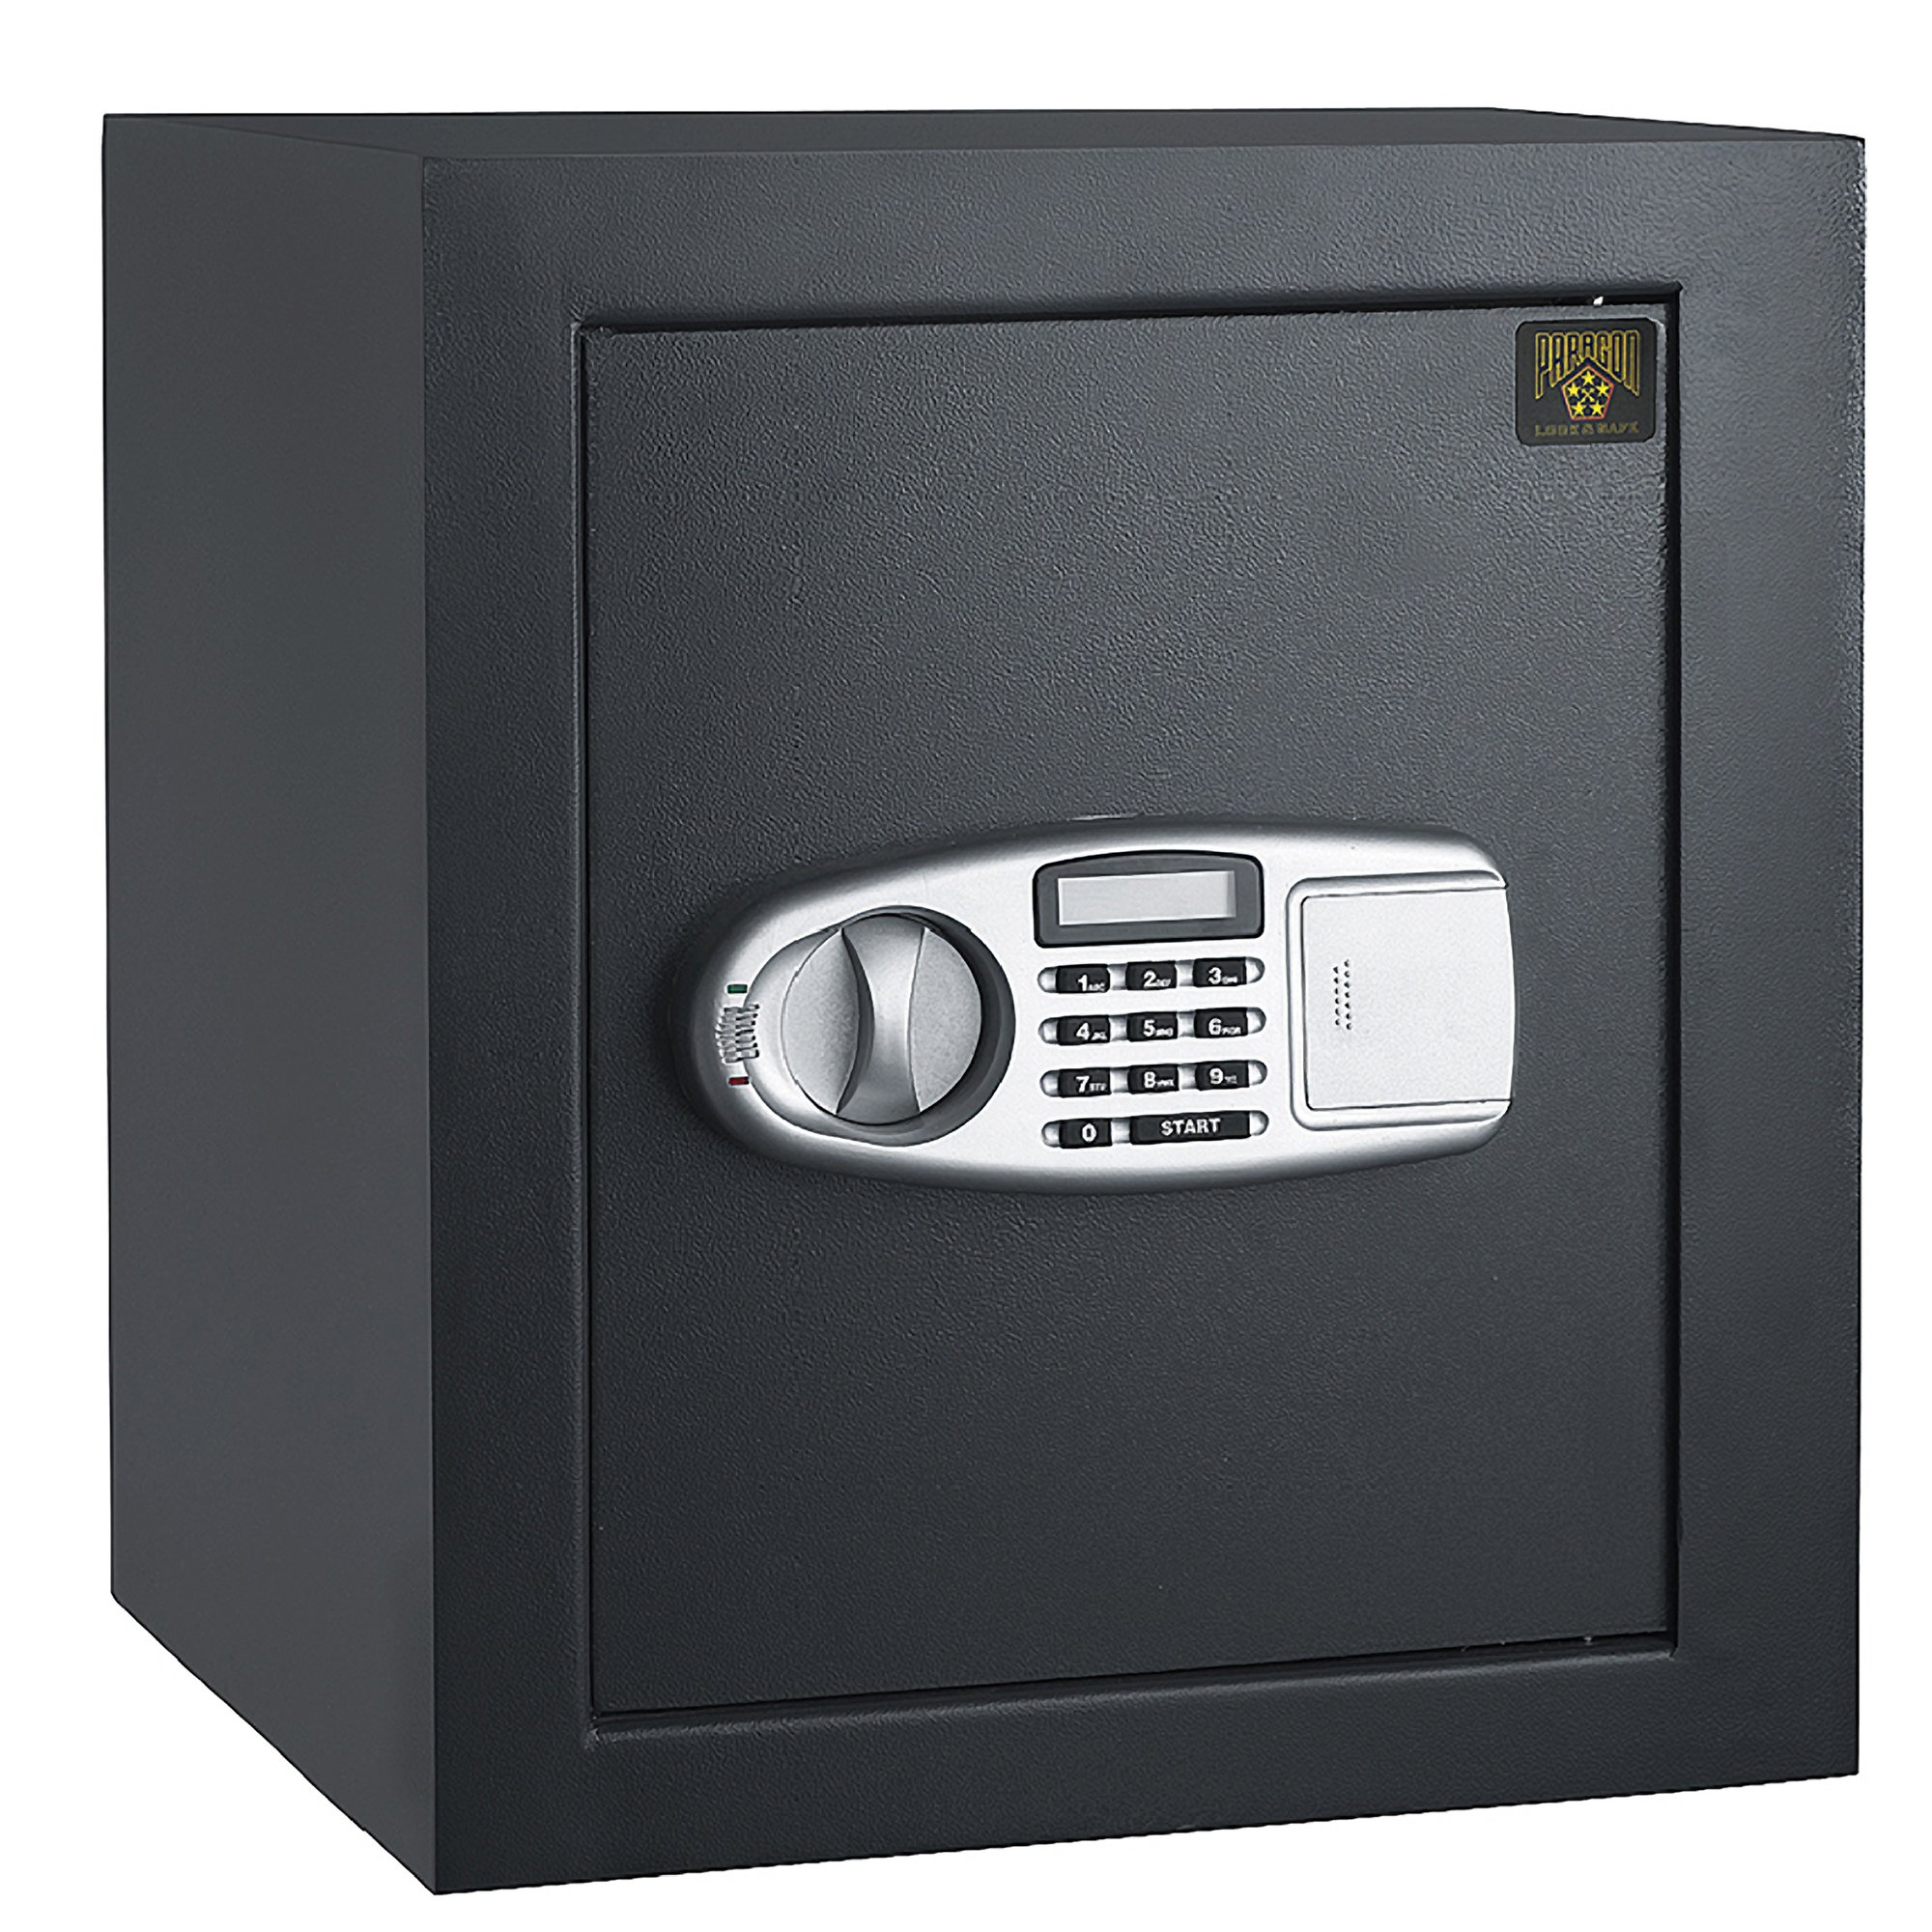 Paragon 7800 Electronic Fire Proof .3 CF Digital Lock and Safe Fire Proof Home Security by Paragon Lock and Safe